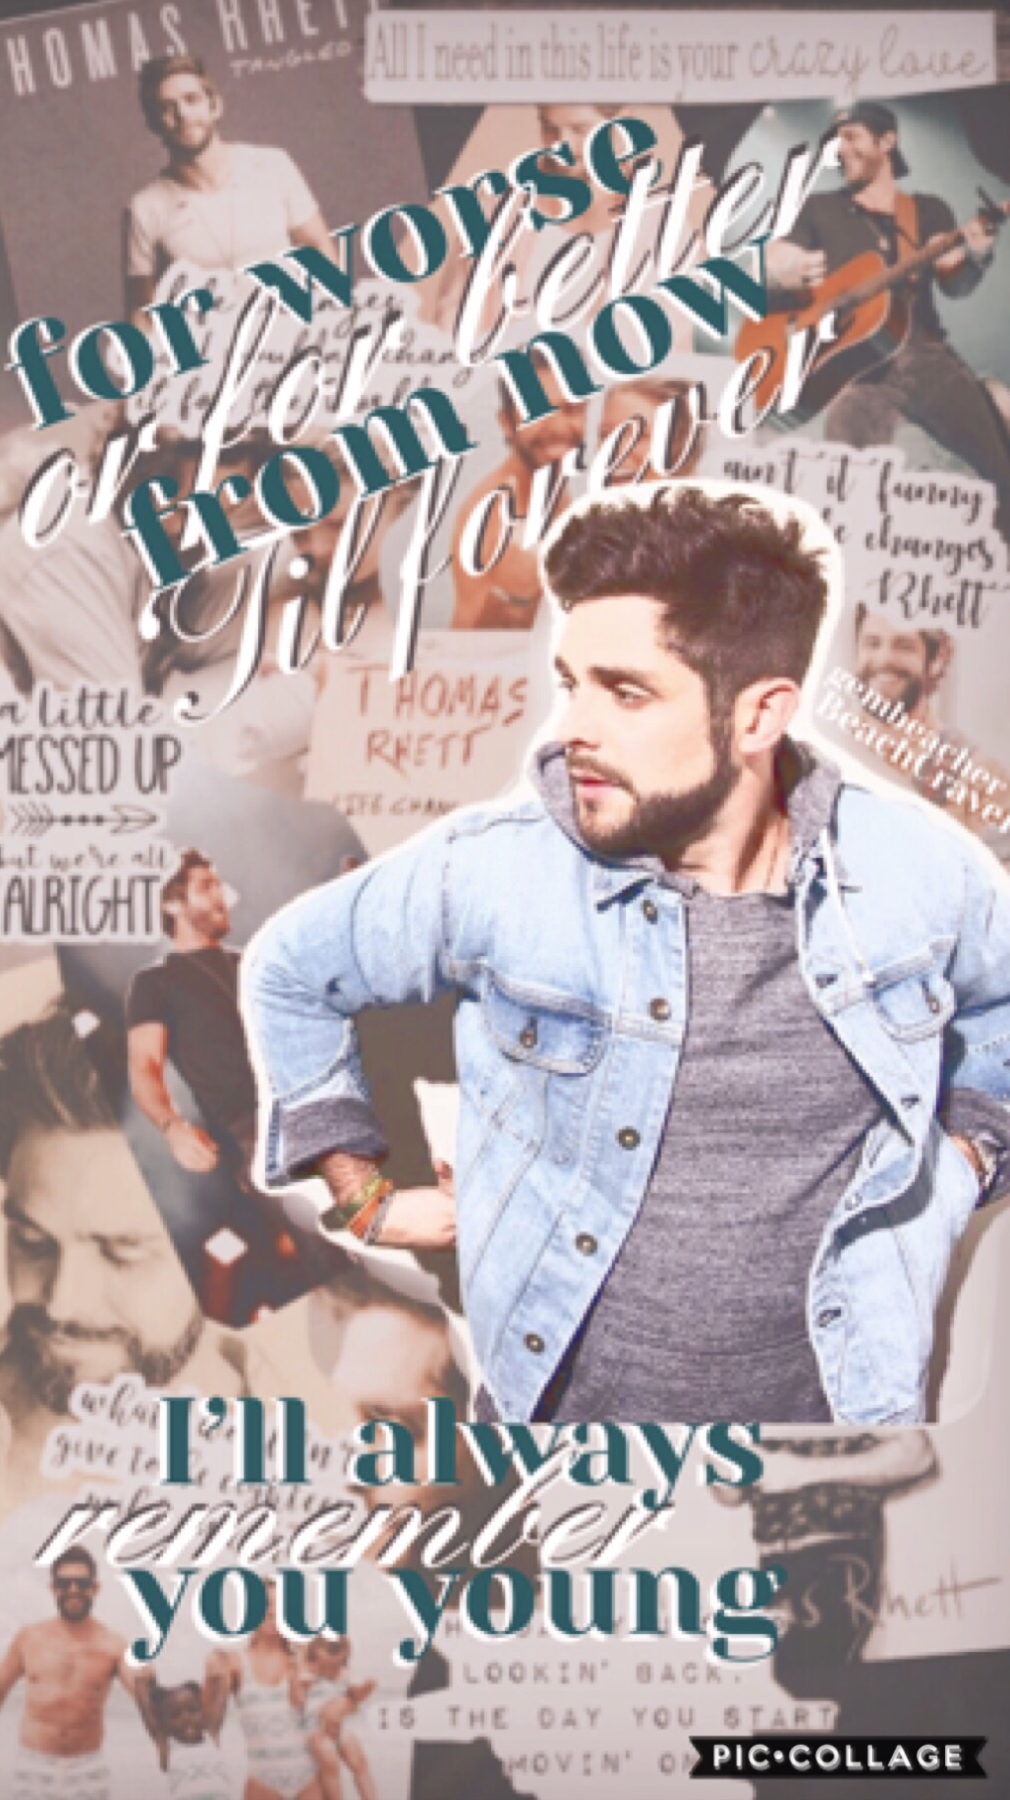 Collab with Gembeacher!!  This is a Thomas Rhett collage. Comment if you listen to him. If you haven't, do it!! He is an amazing country singer.